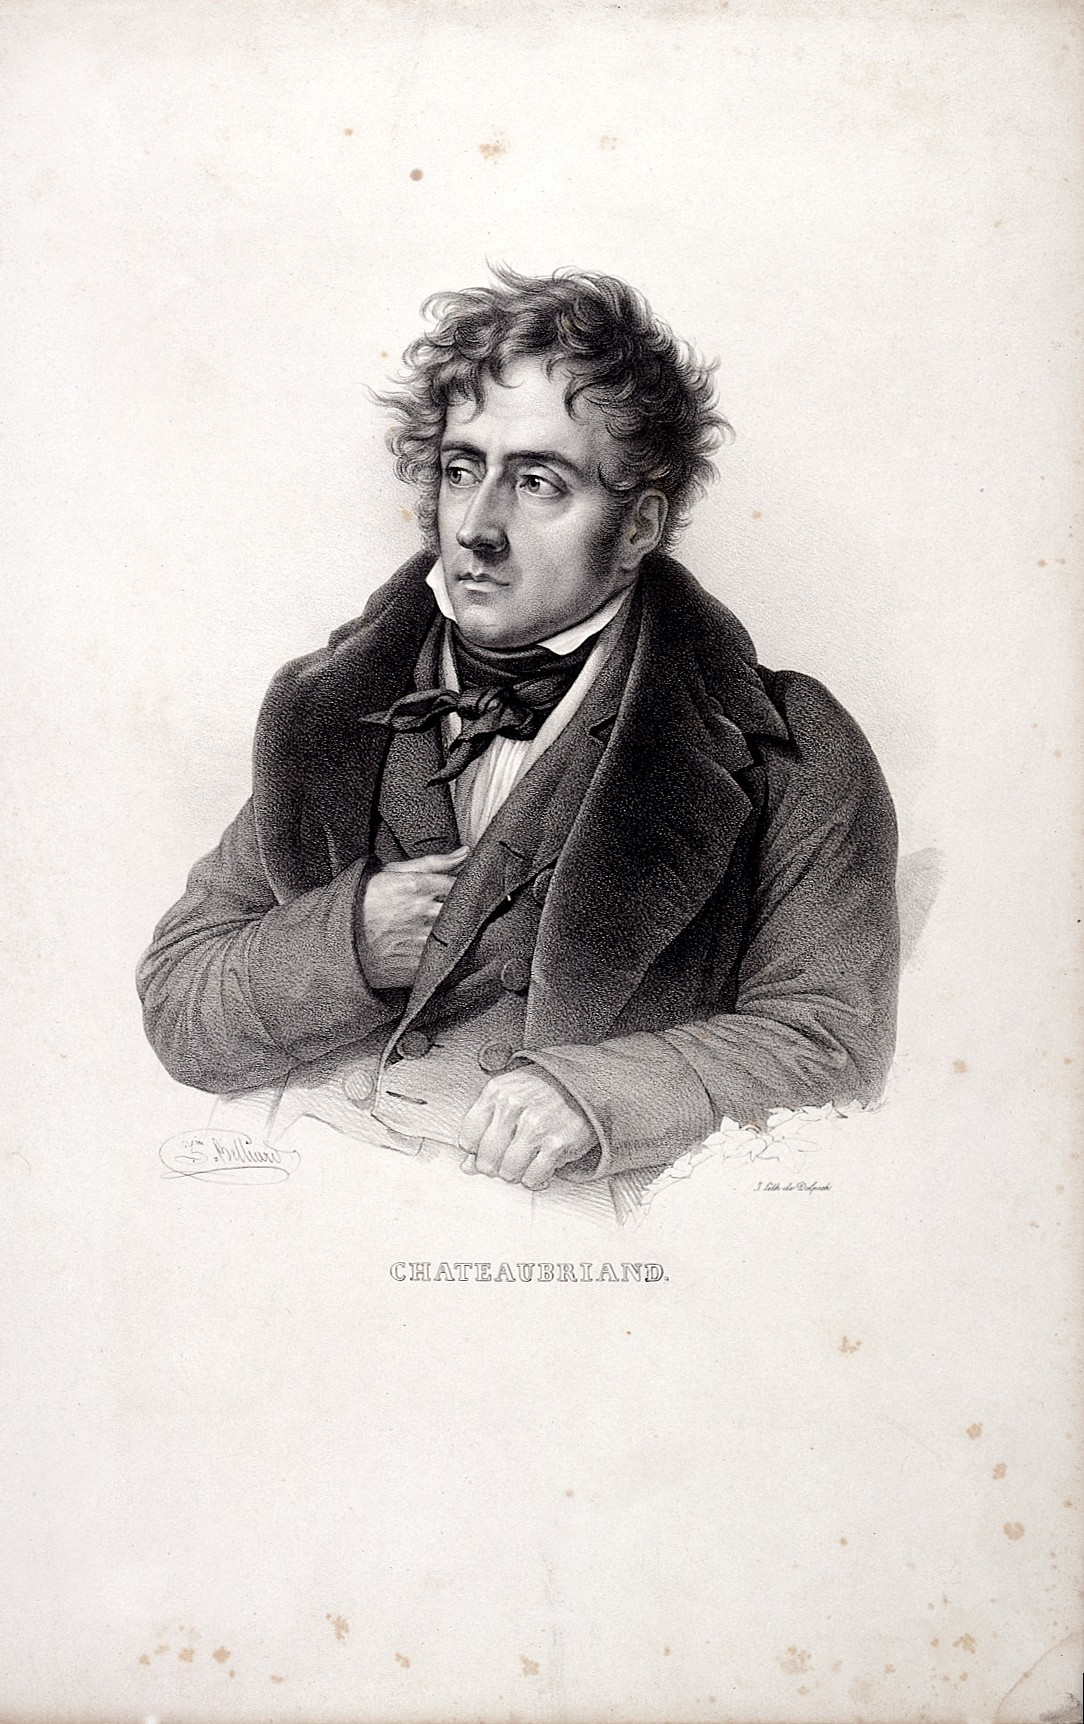 L0023586 François-René, Vicomte de Chateaubriand (1768-1848) Credit: Wellcome Library, London. Wellcome Images images@wellcome.ac.uk https://wellcomeimages.org Francois-Auguste, Vicomte de Chateaubriand Lithograph 1832 By: Francois Seraphin Delpechafter: François Séraphin Delpech and Zéphirin-Félix-Jean-Marius BelliardPublished: [1832] Copyrighted work available under Creative Commons Attribution only licence CC BY 4.0 https://creativecommons.org/licenses/by/4.0/